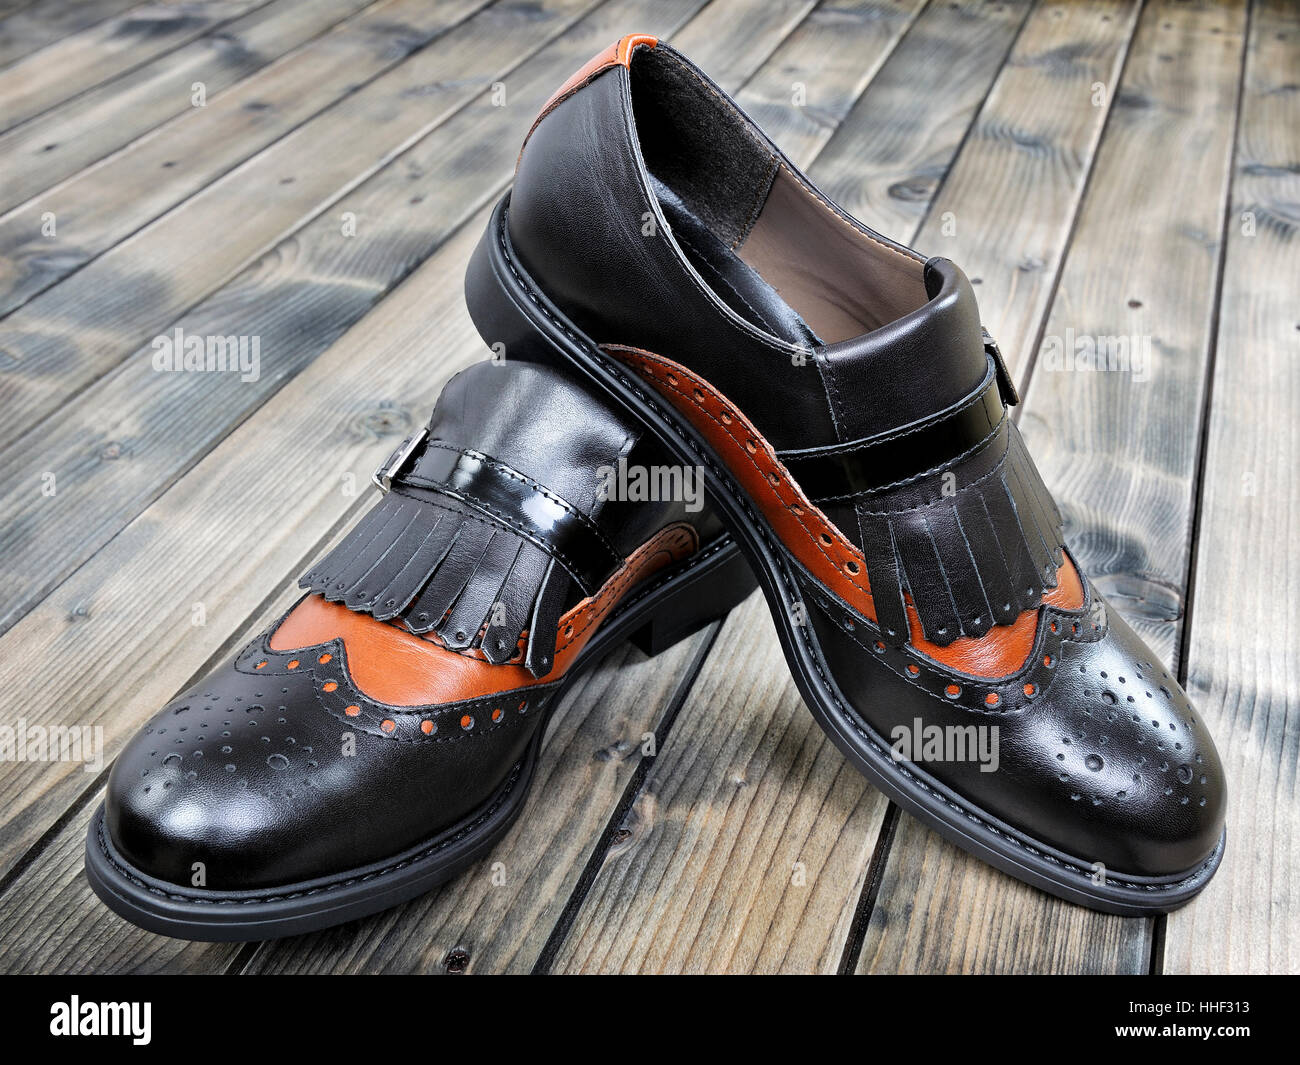 Women s shoes with low heels leather black and brown 716a5c6ccb